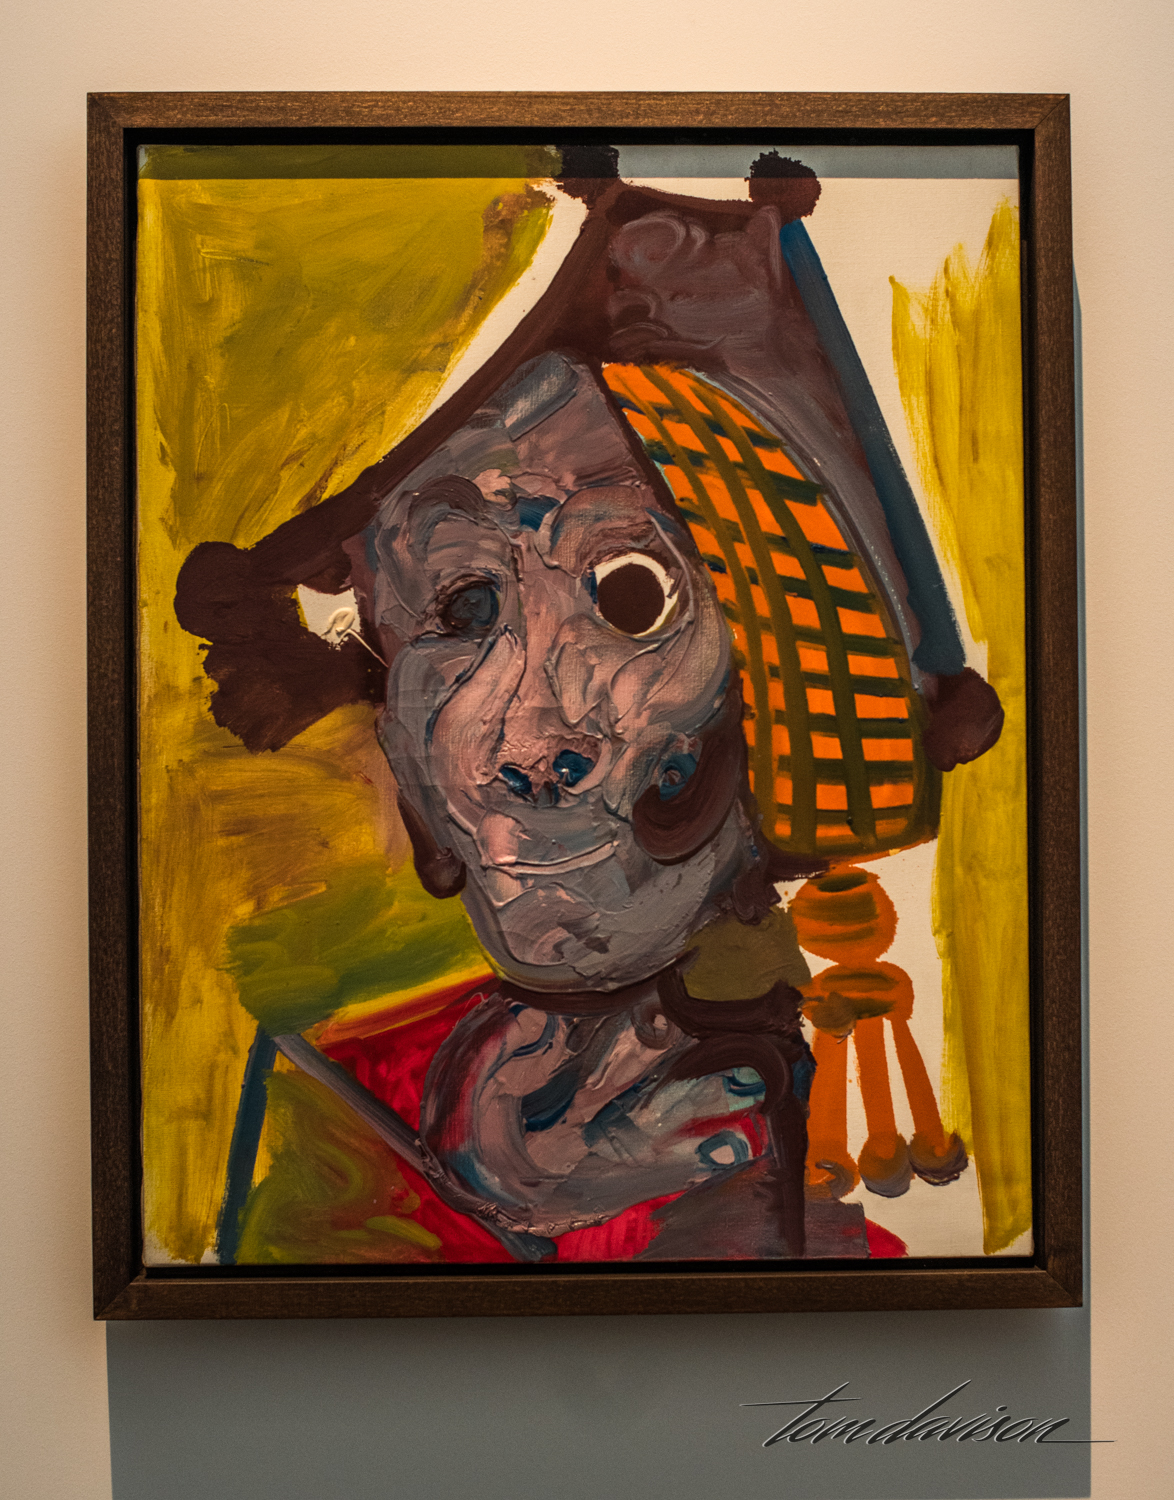 "Bullfighter, Oil on canvas, 1970. ""Picasso's father took him to see his first bullfight in 1889, when he was eight years old. The spectacle made a deep impression on him, and he made it the subject of his very first painting that year.  In 1934, he took up the bullfight as a theme, using it as a metaphor for life and death.  Here, Picasso painted himself as a bullfighter with his usual passion for color and feverish strokes.  Nearing 8]90, however, his stare has a tinge of world weariness."""